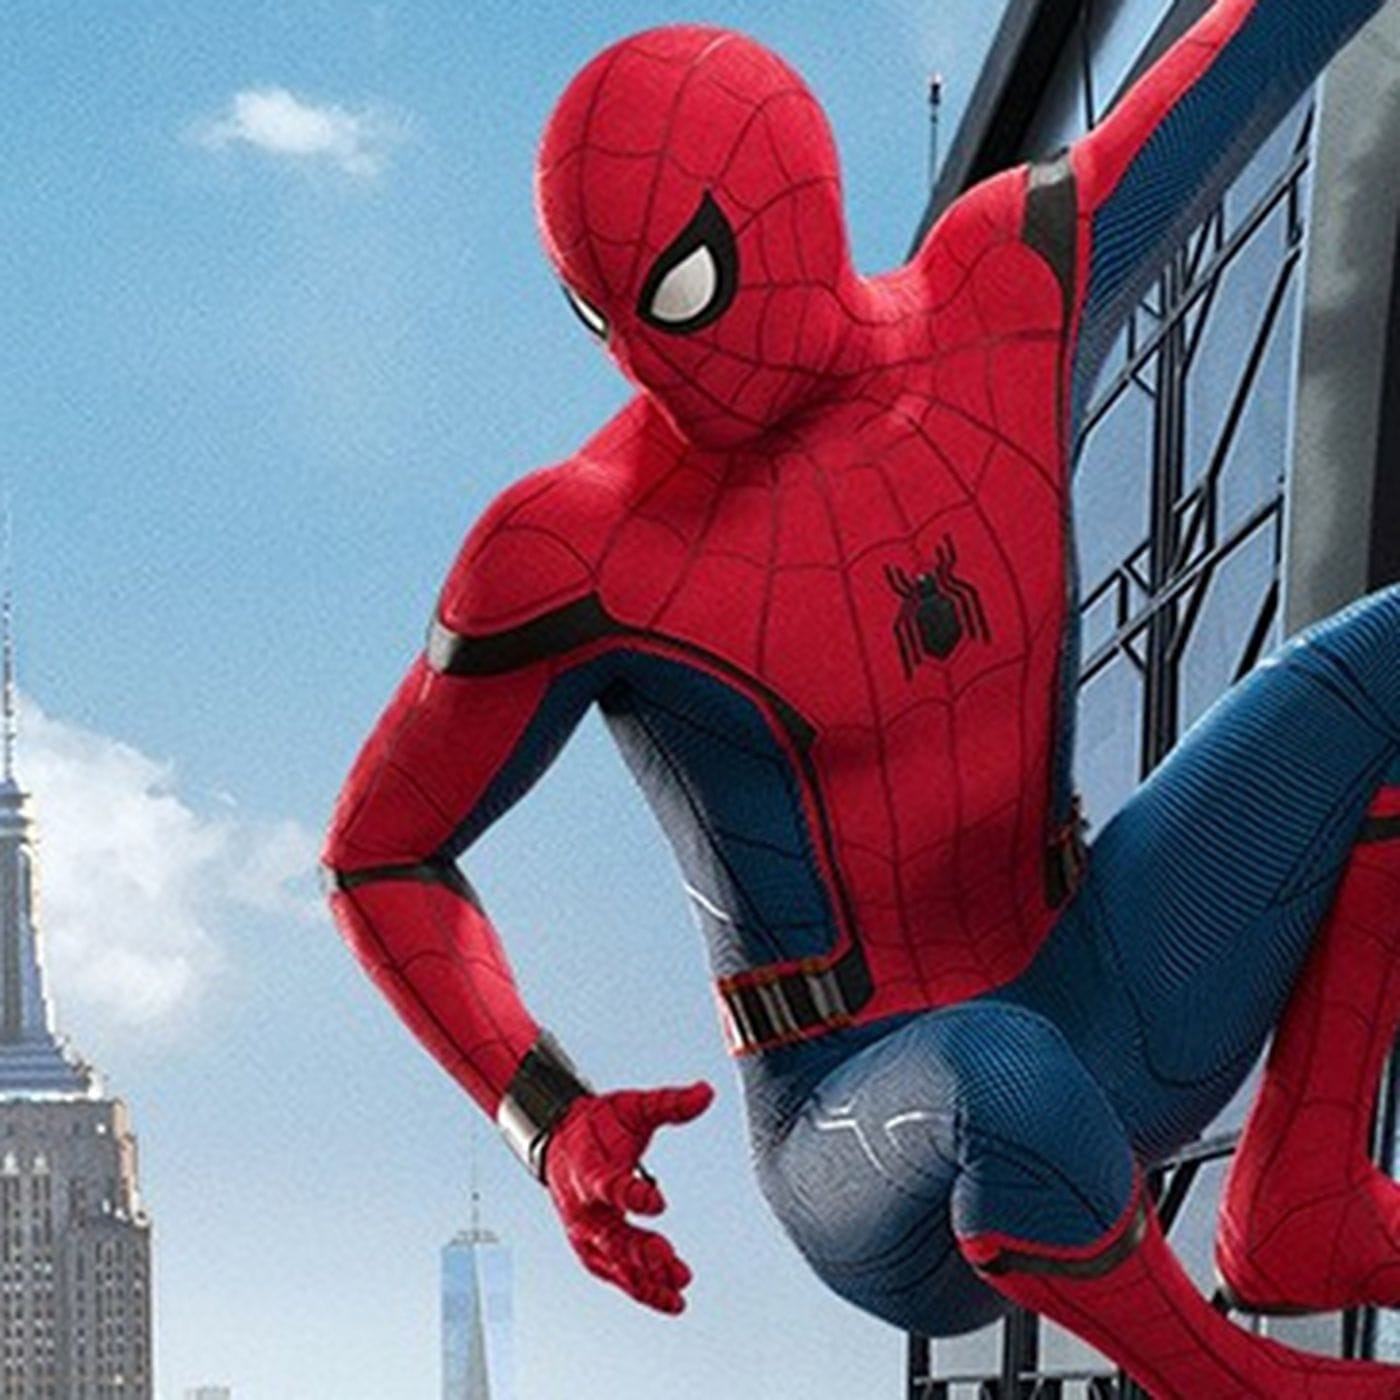 SpiderMan Sequel  Homecoming 2  Brings Surprise